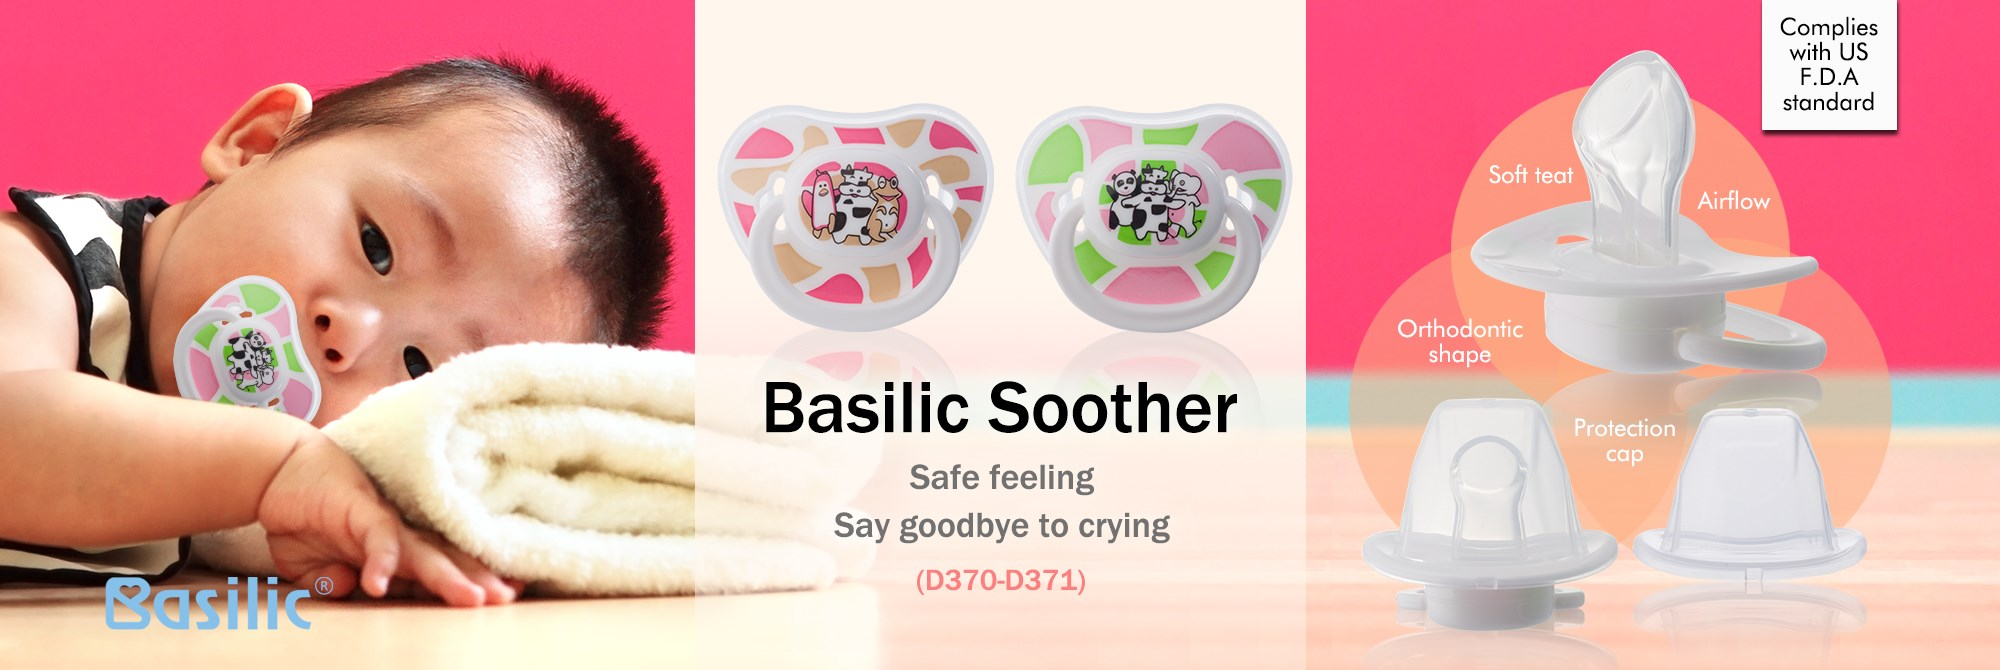 Basilic soother- orthodontic shape (D370-D371)